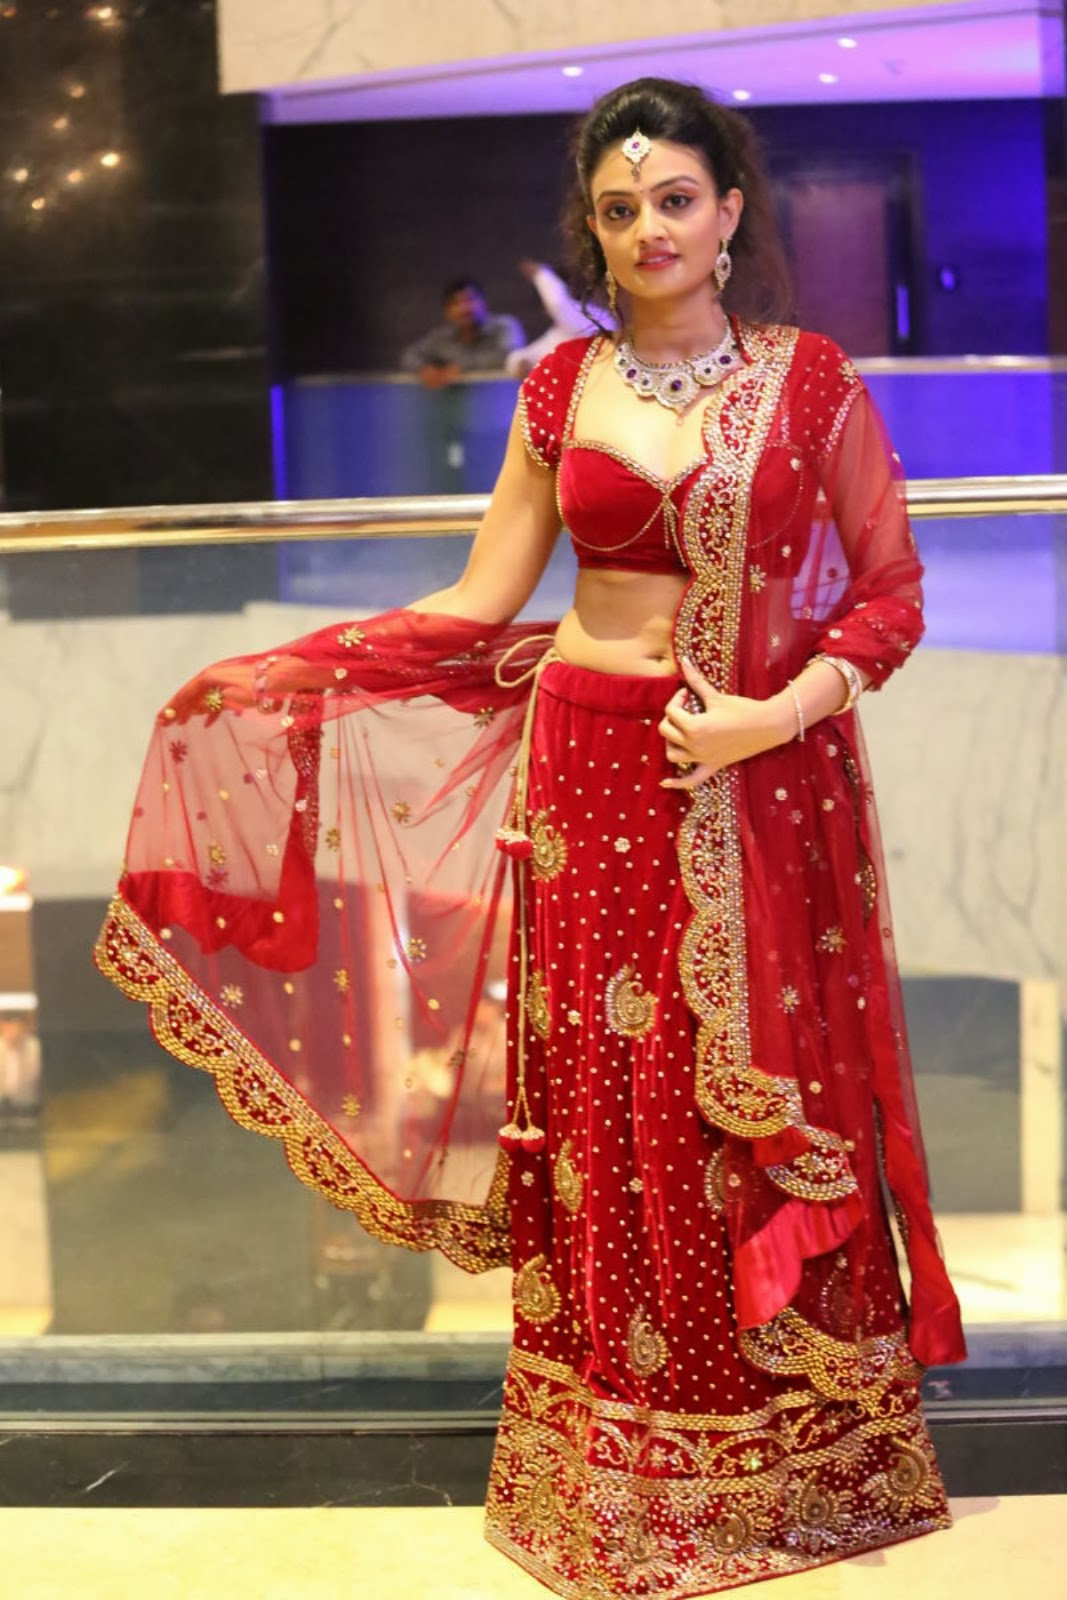 Glamorous Nikitha narayan in ethnic Indian red lengha choli dress